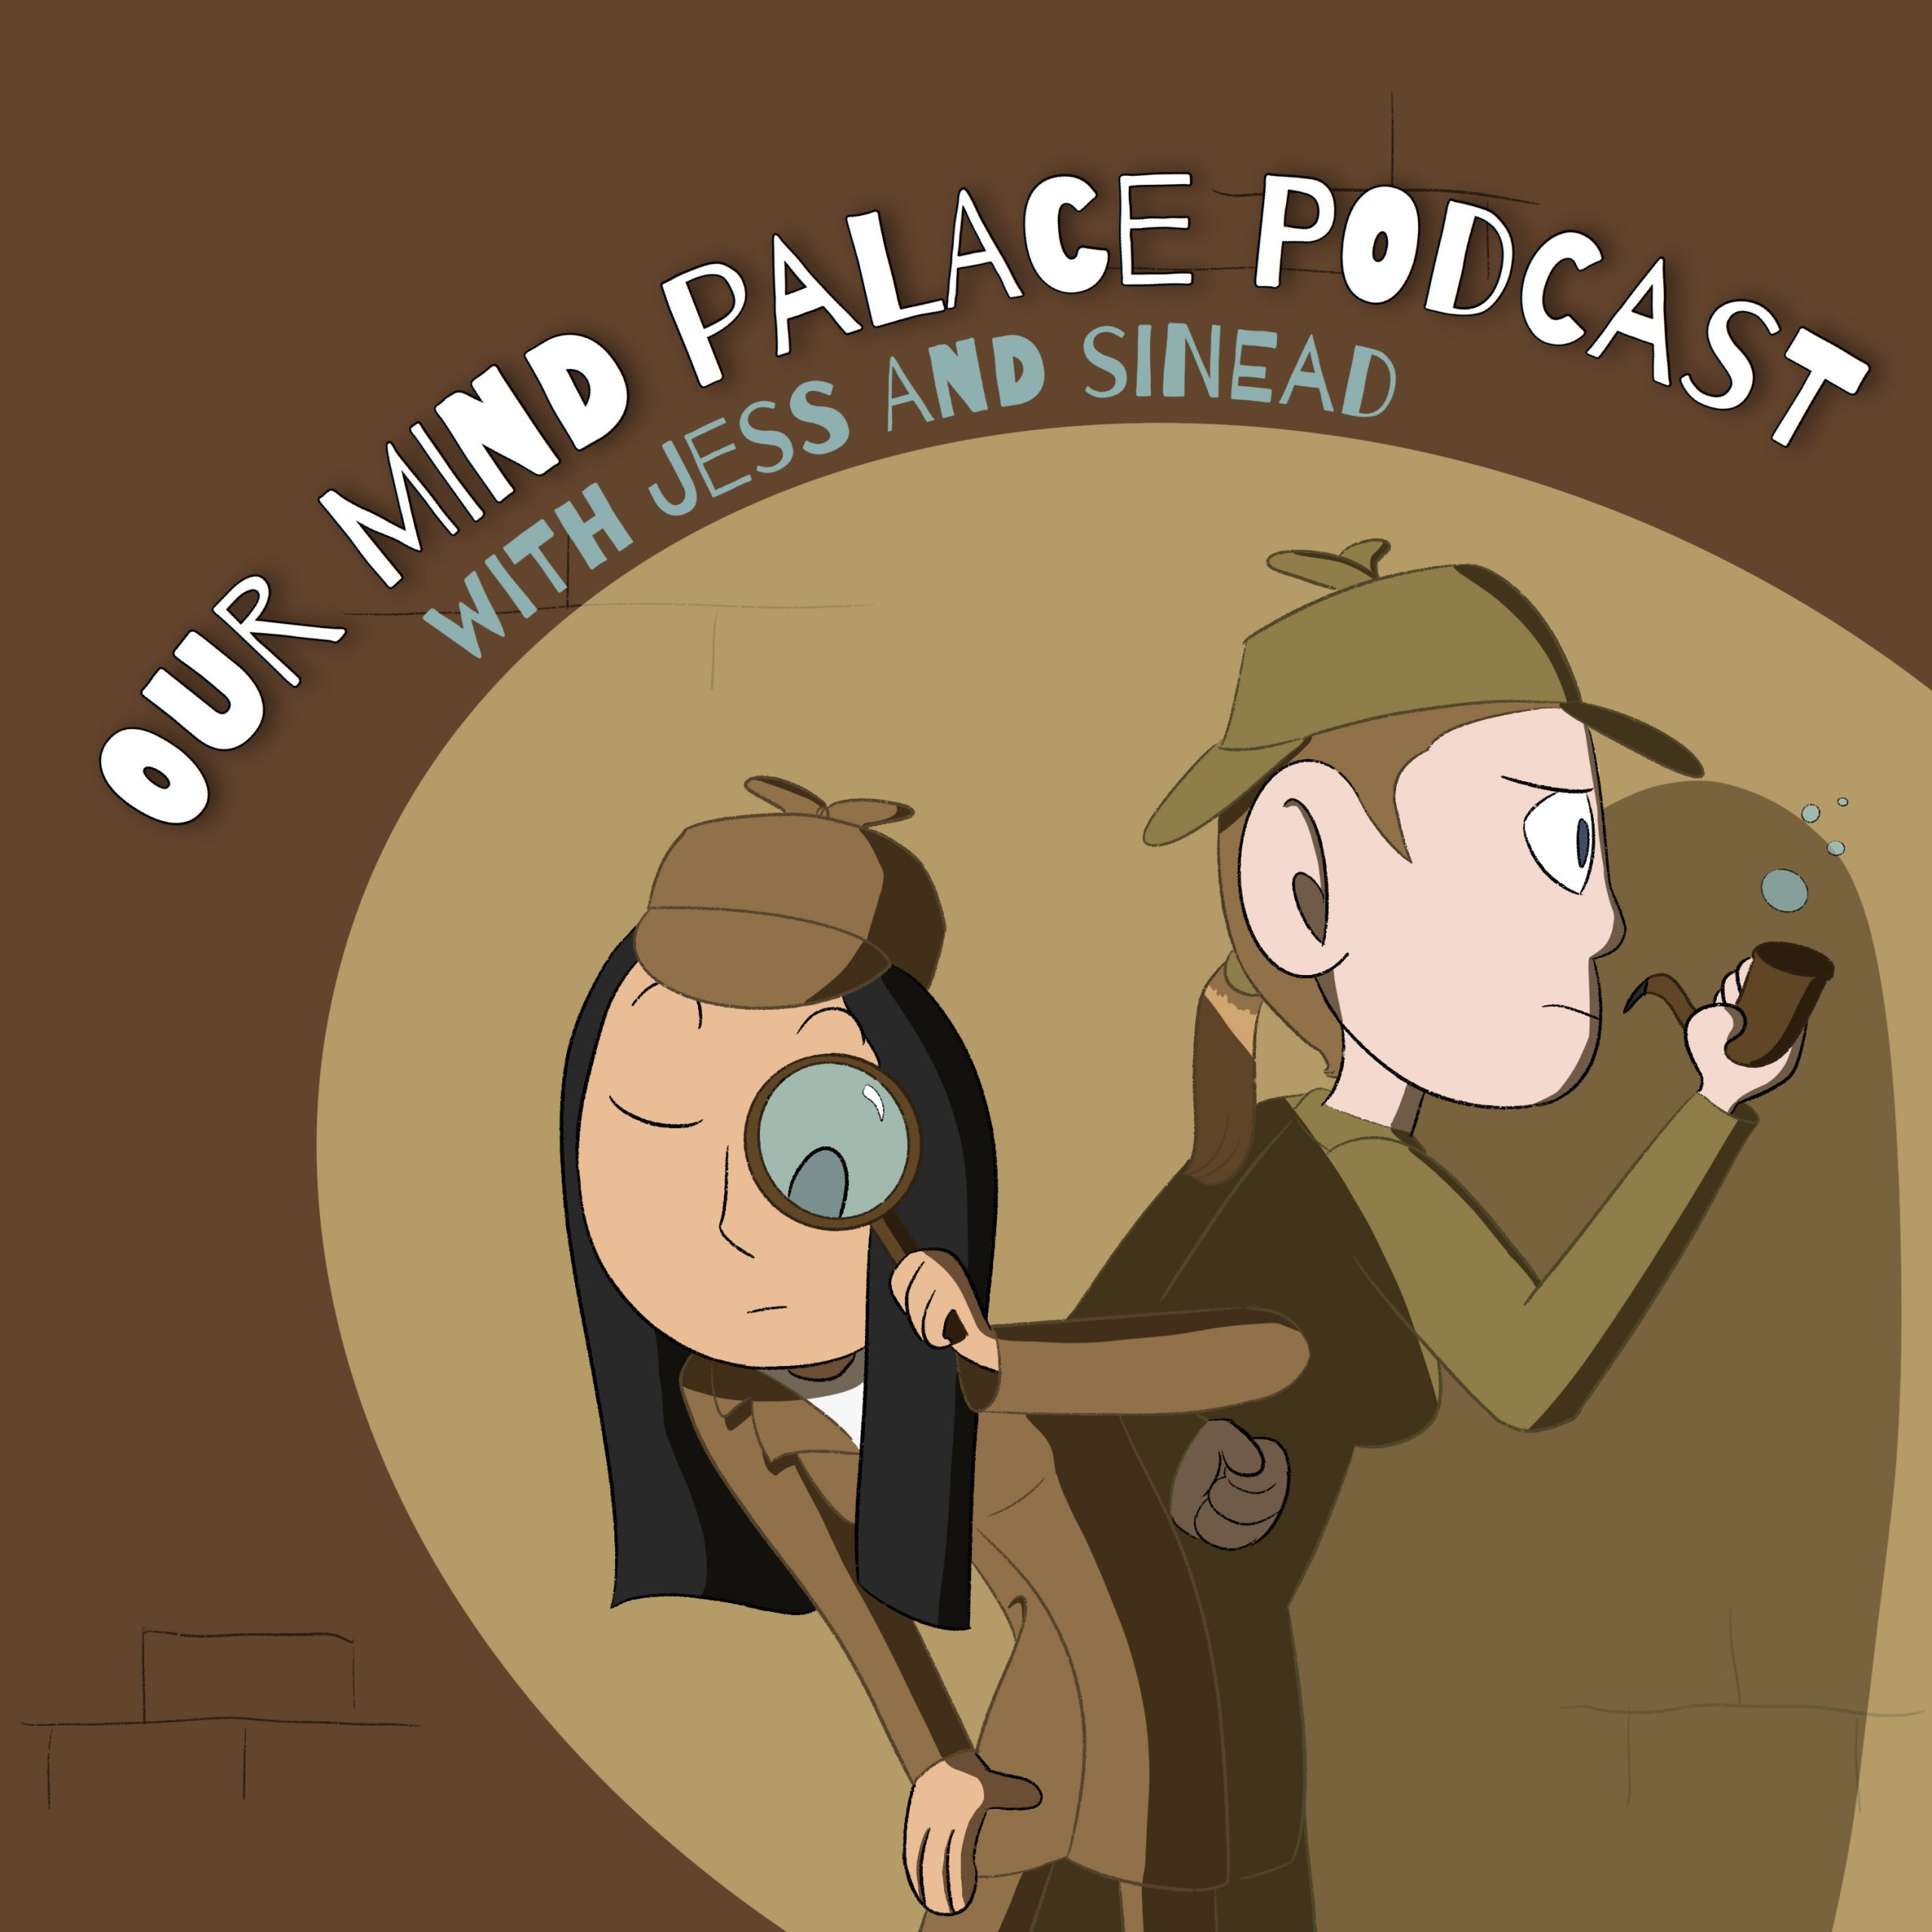 Our Mind Palace Podcast